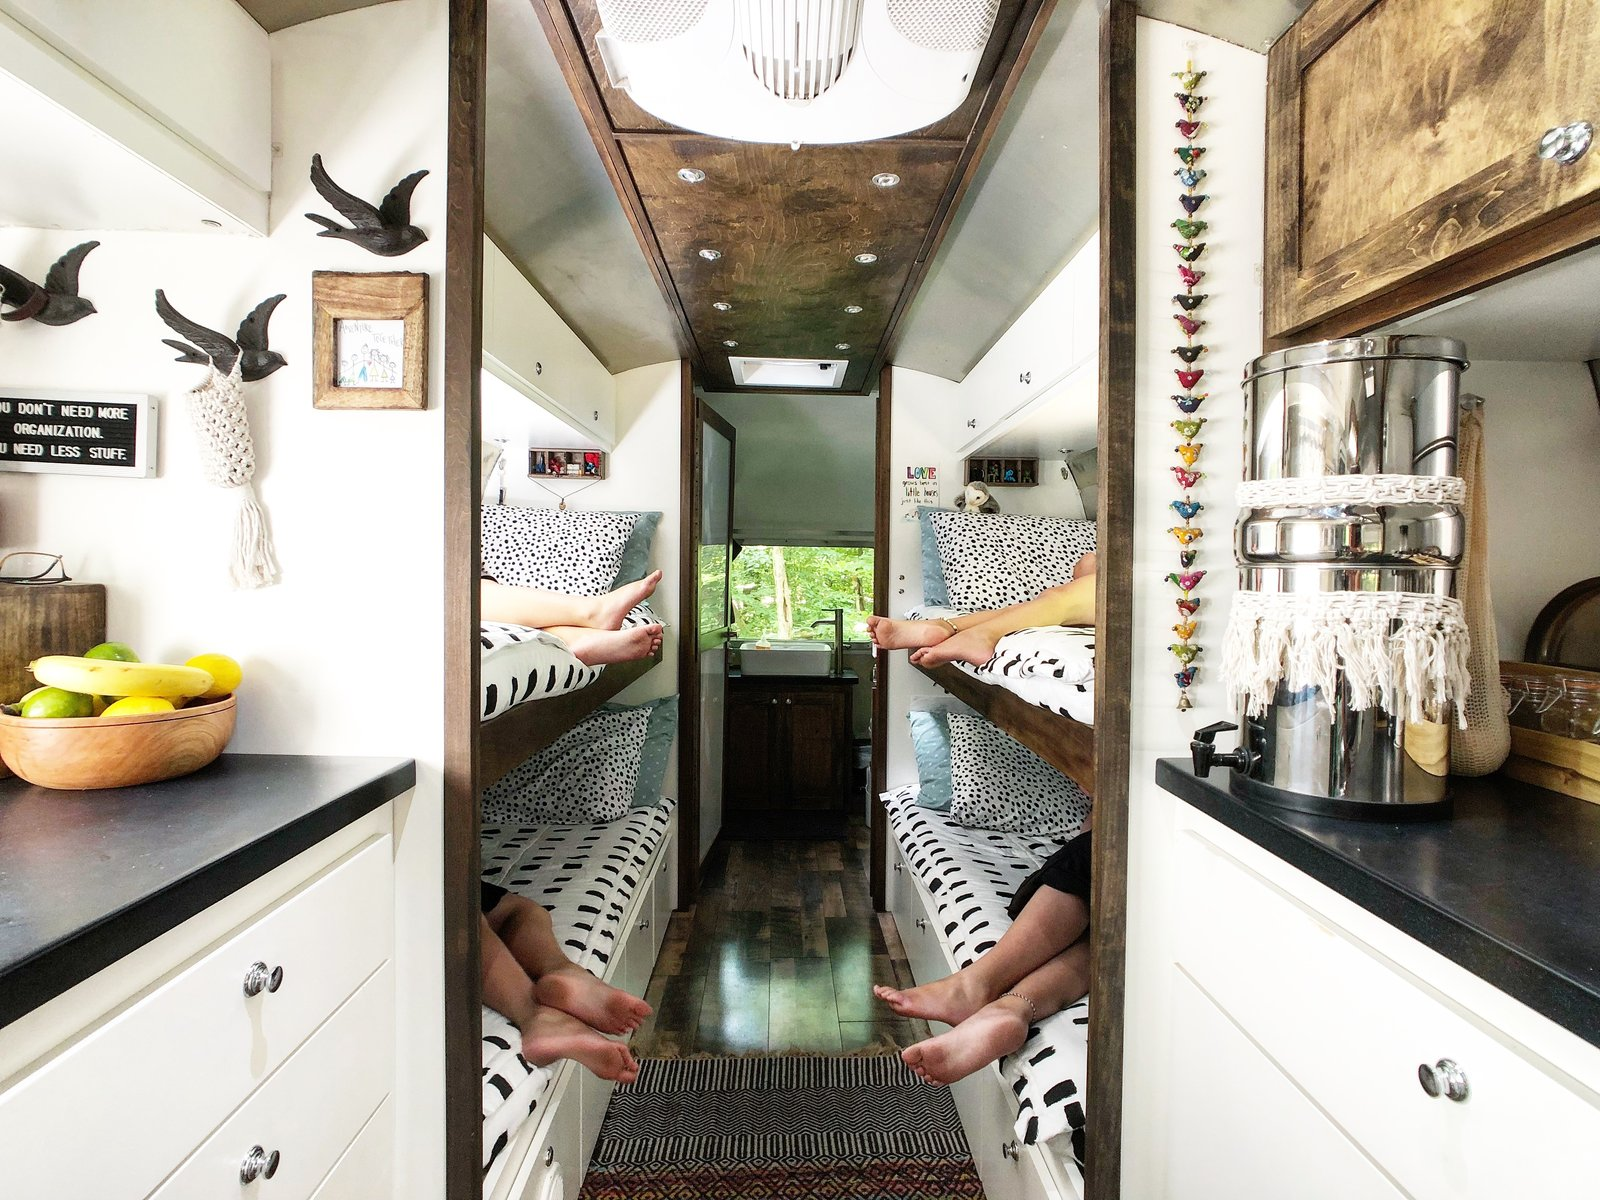 Bedroom, Storage, Medium Hardwood Floor, and Bunks The kids' fold-down bunk-beds are complete with Beddy's Bedding, which helps the space stay neat and organized.     Photo 6 of 12 in A 1970s Airstream Is Revamped Into an Off-Grid Home For Six from 1972 Vintage Airstream Trailer